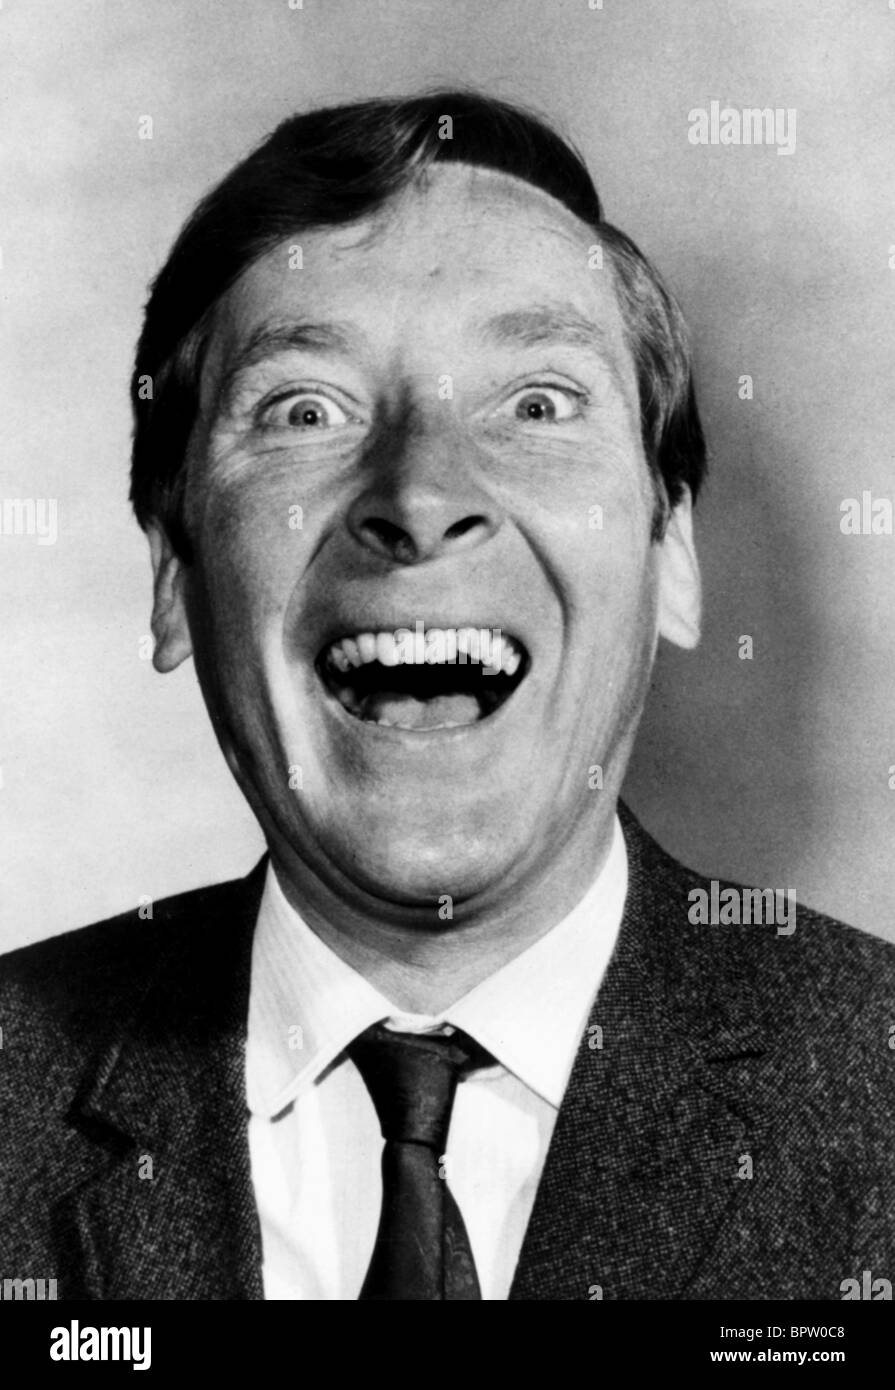 KENNETH WILLIAMS ACTOR (1969) - Stock Image